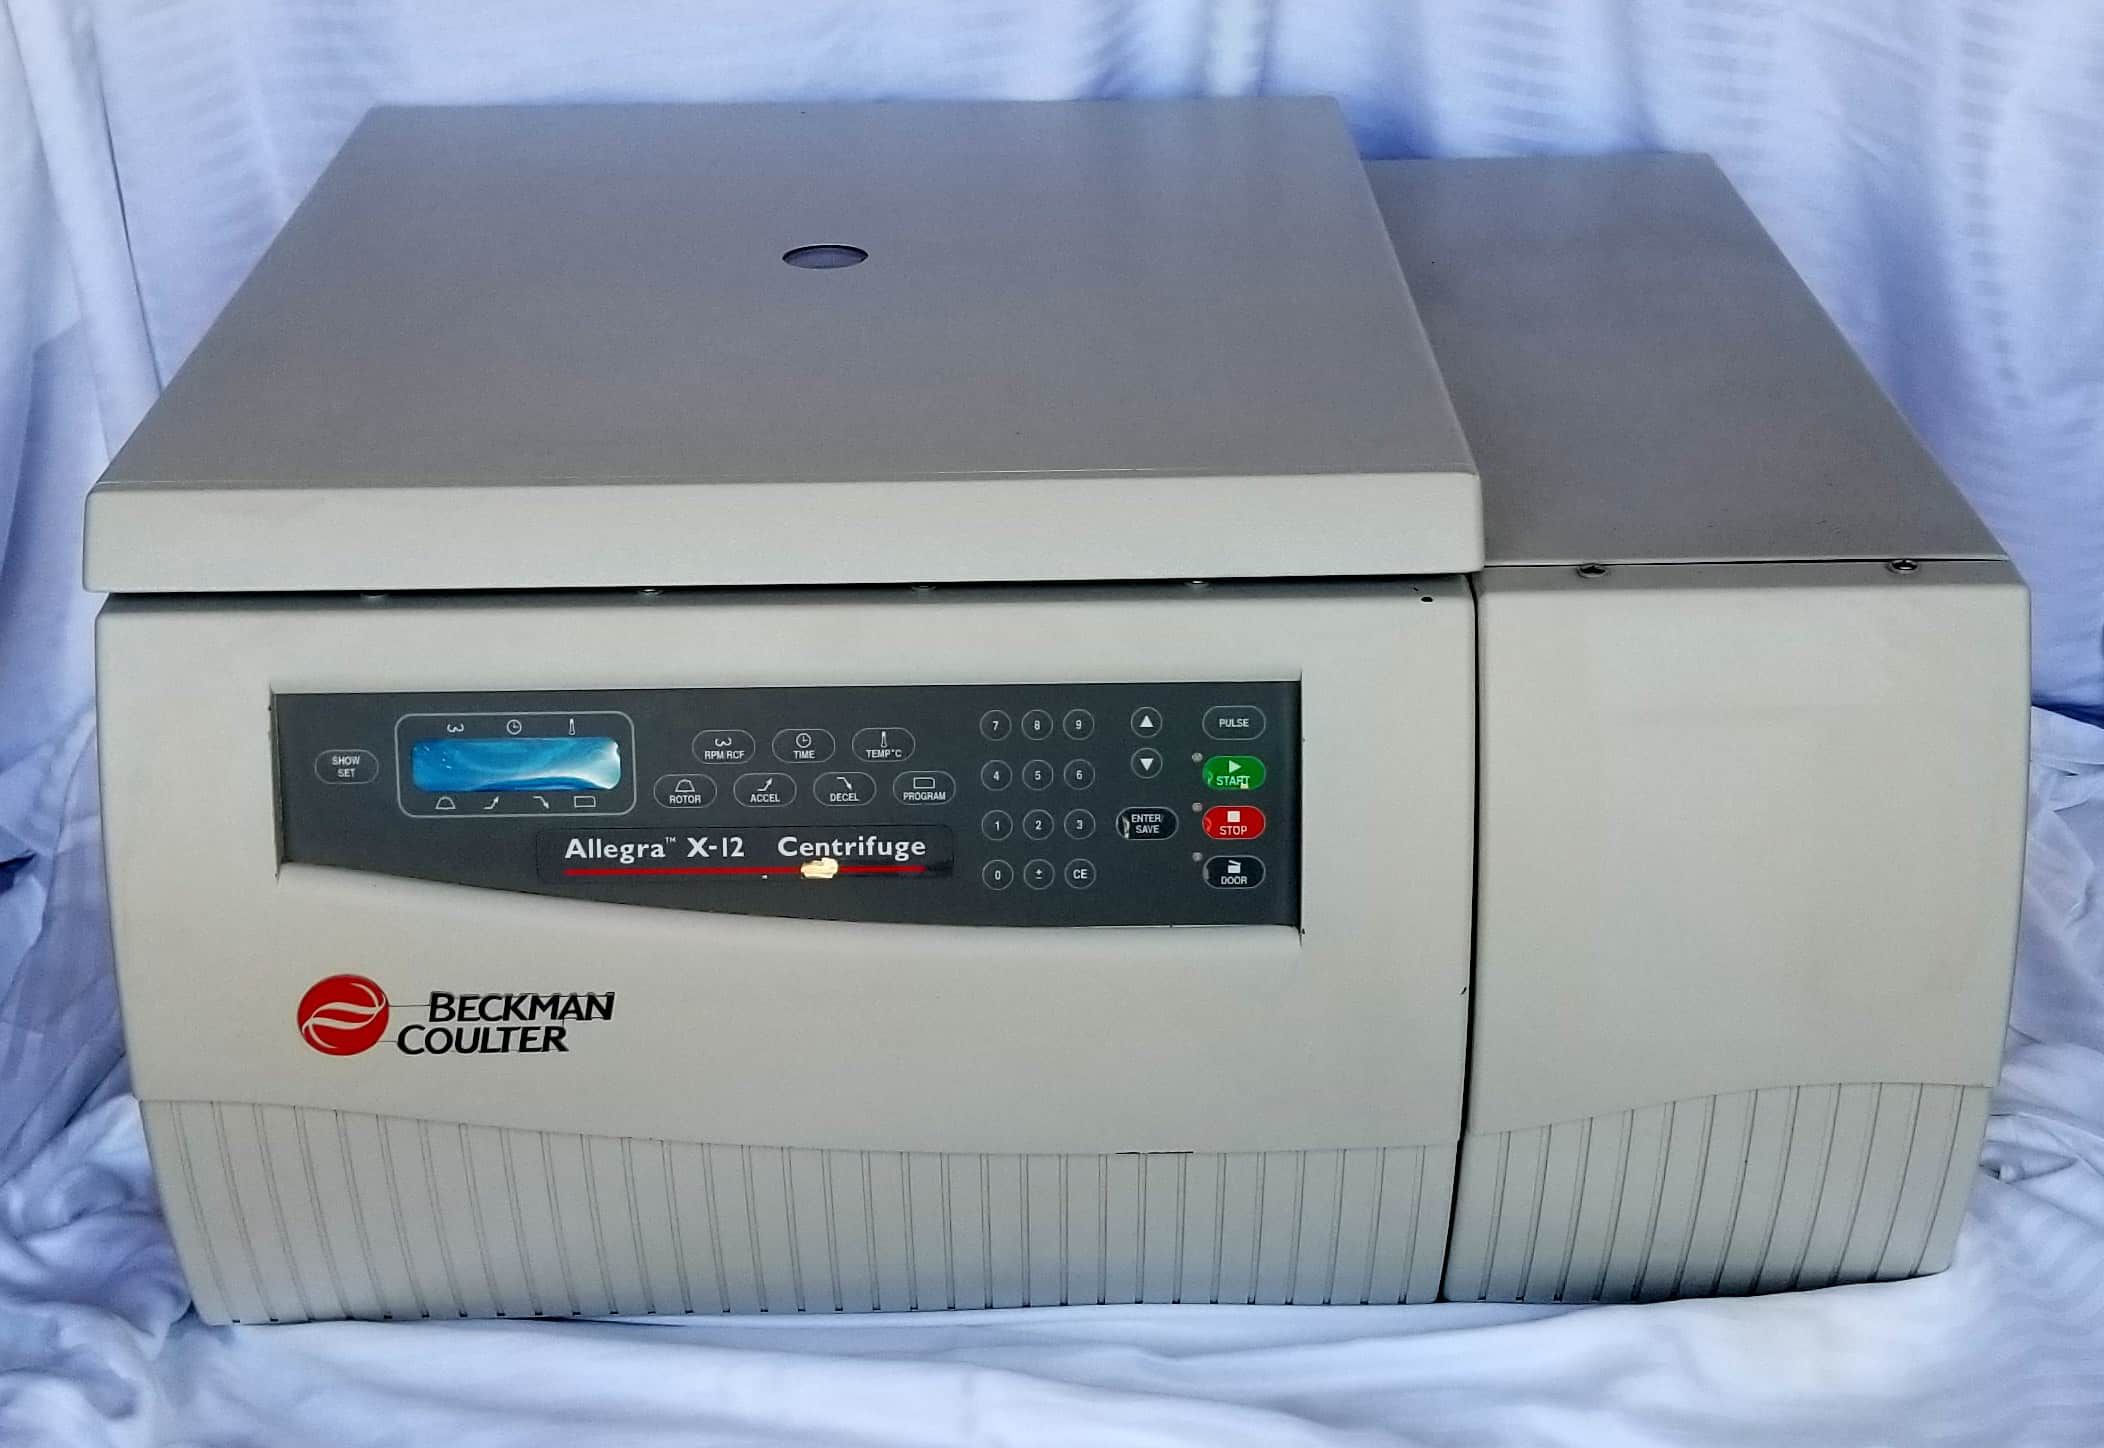 Beckman Coulter Allegra X-12 centrifuge with SX4750 rotor and buckets